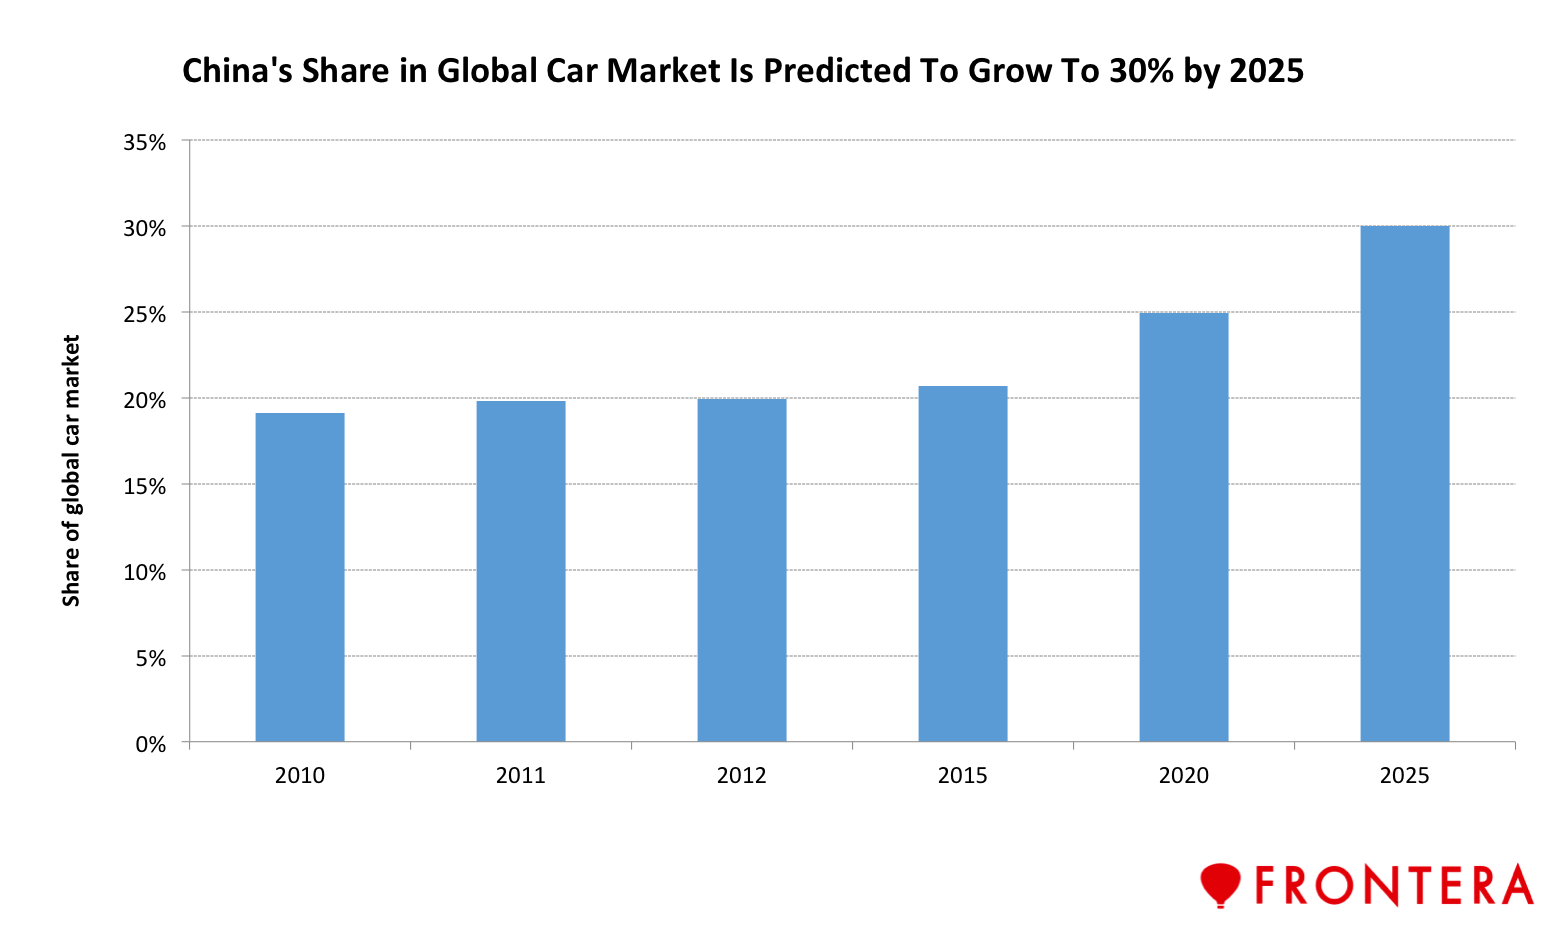 The 5 Gest Automotive Companies In World S Largest Car Market 2